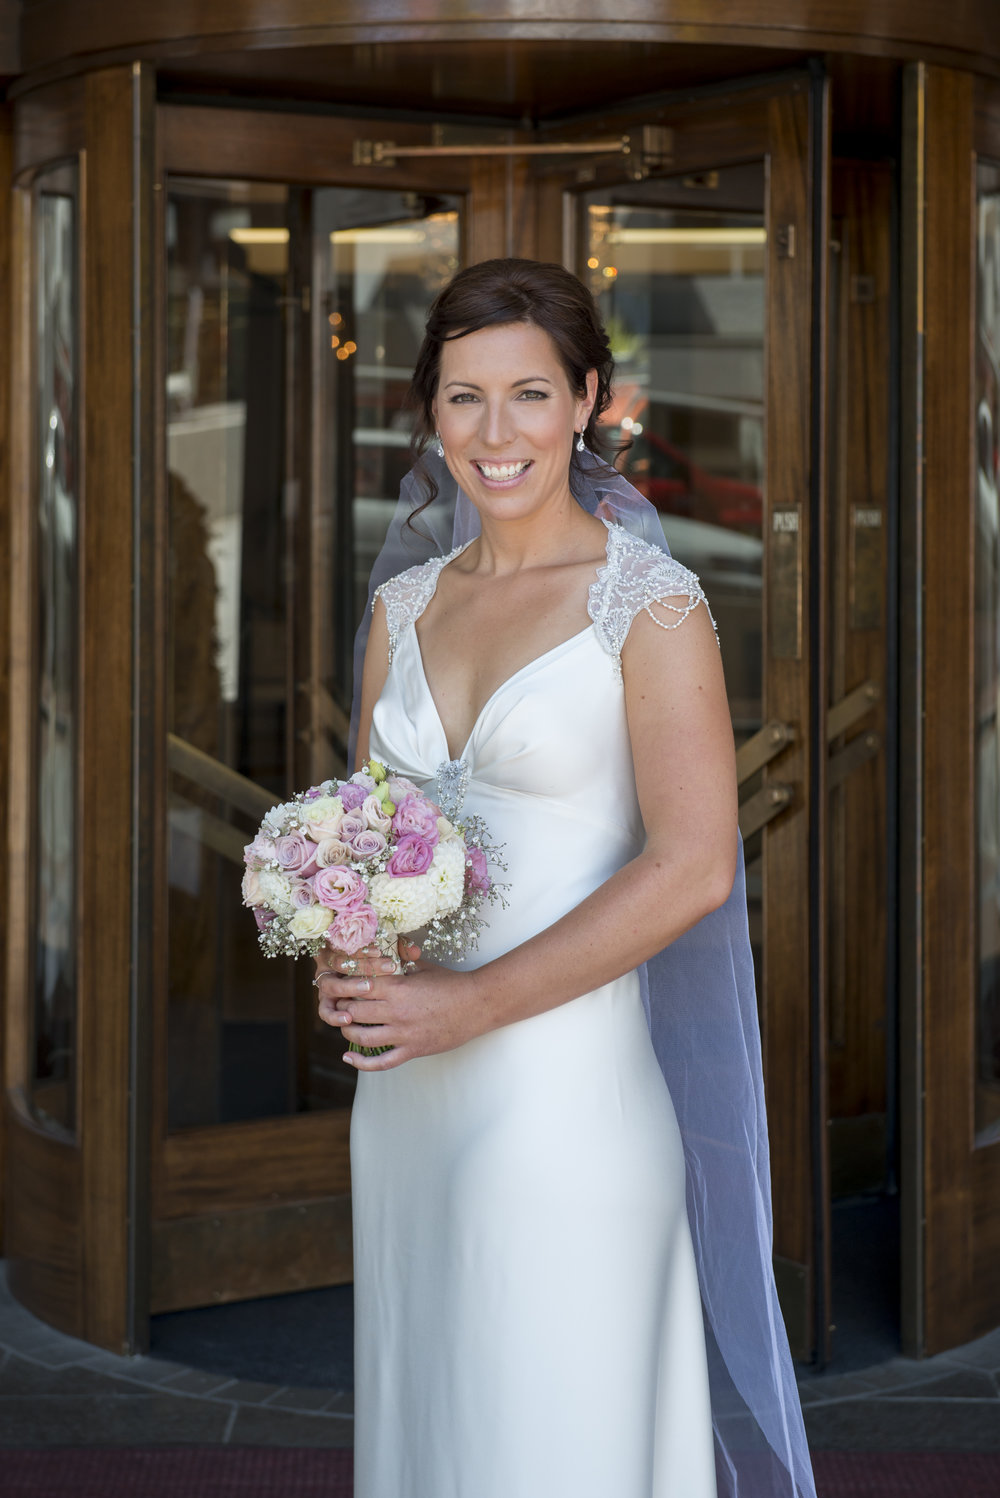 v - silk gwendolynne gown - Oamaru wedding